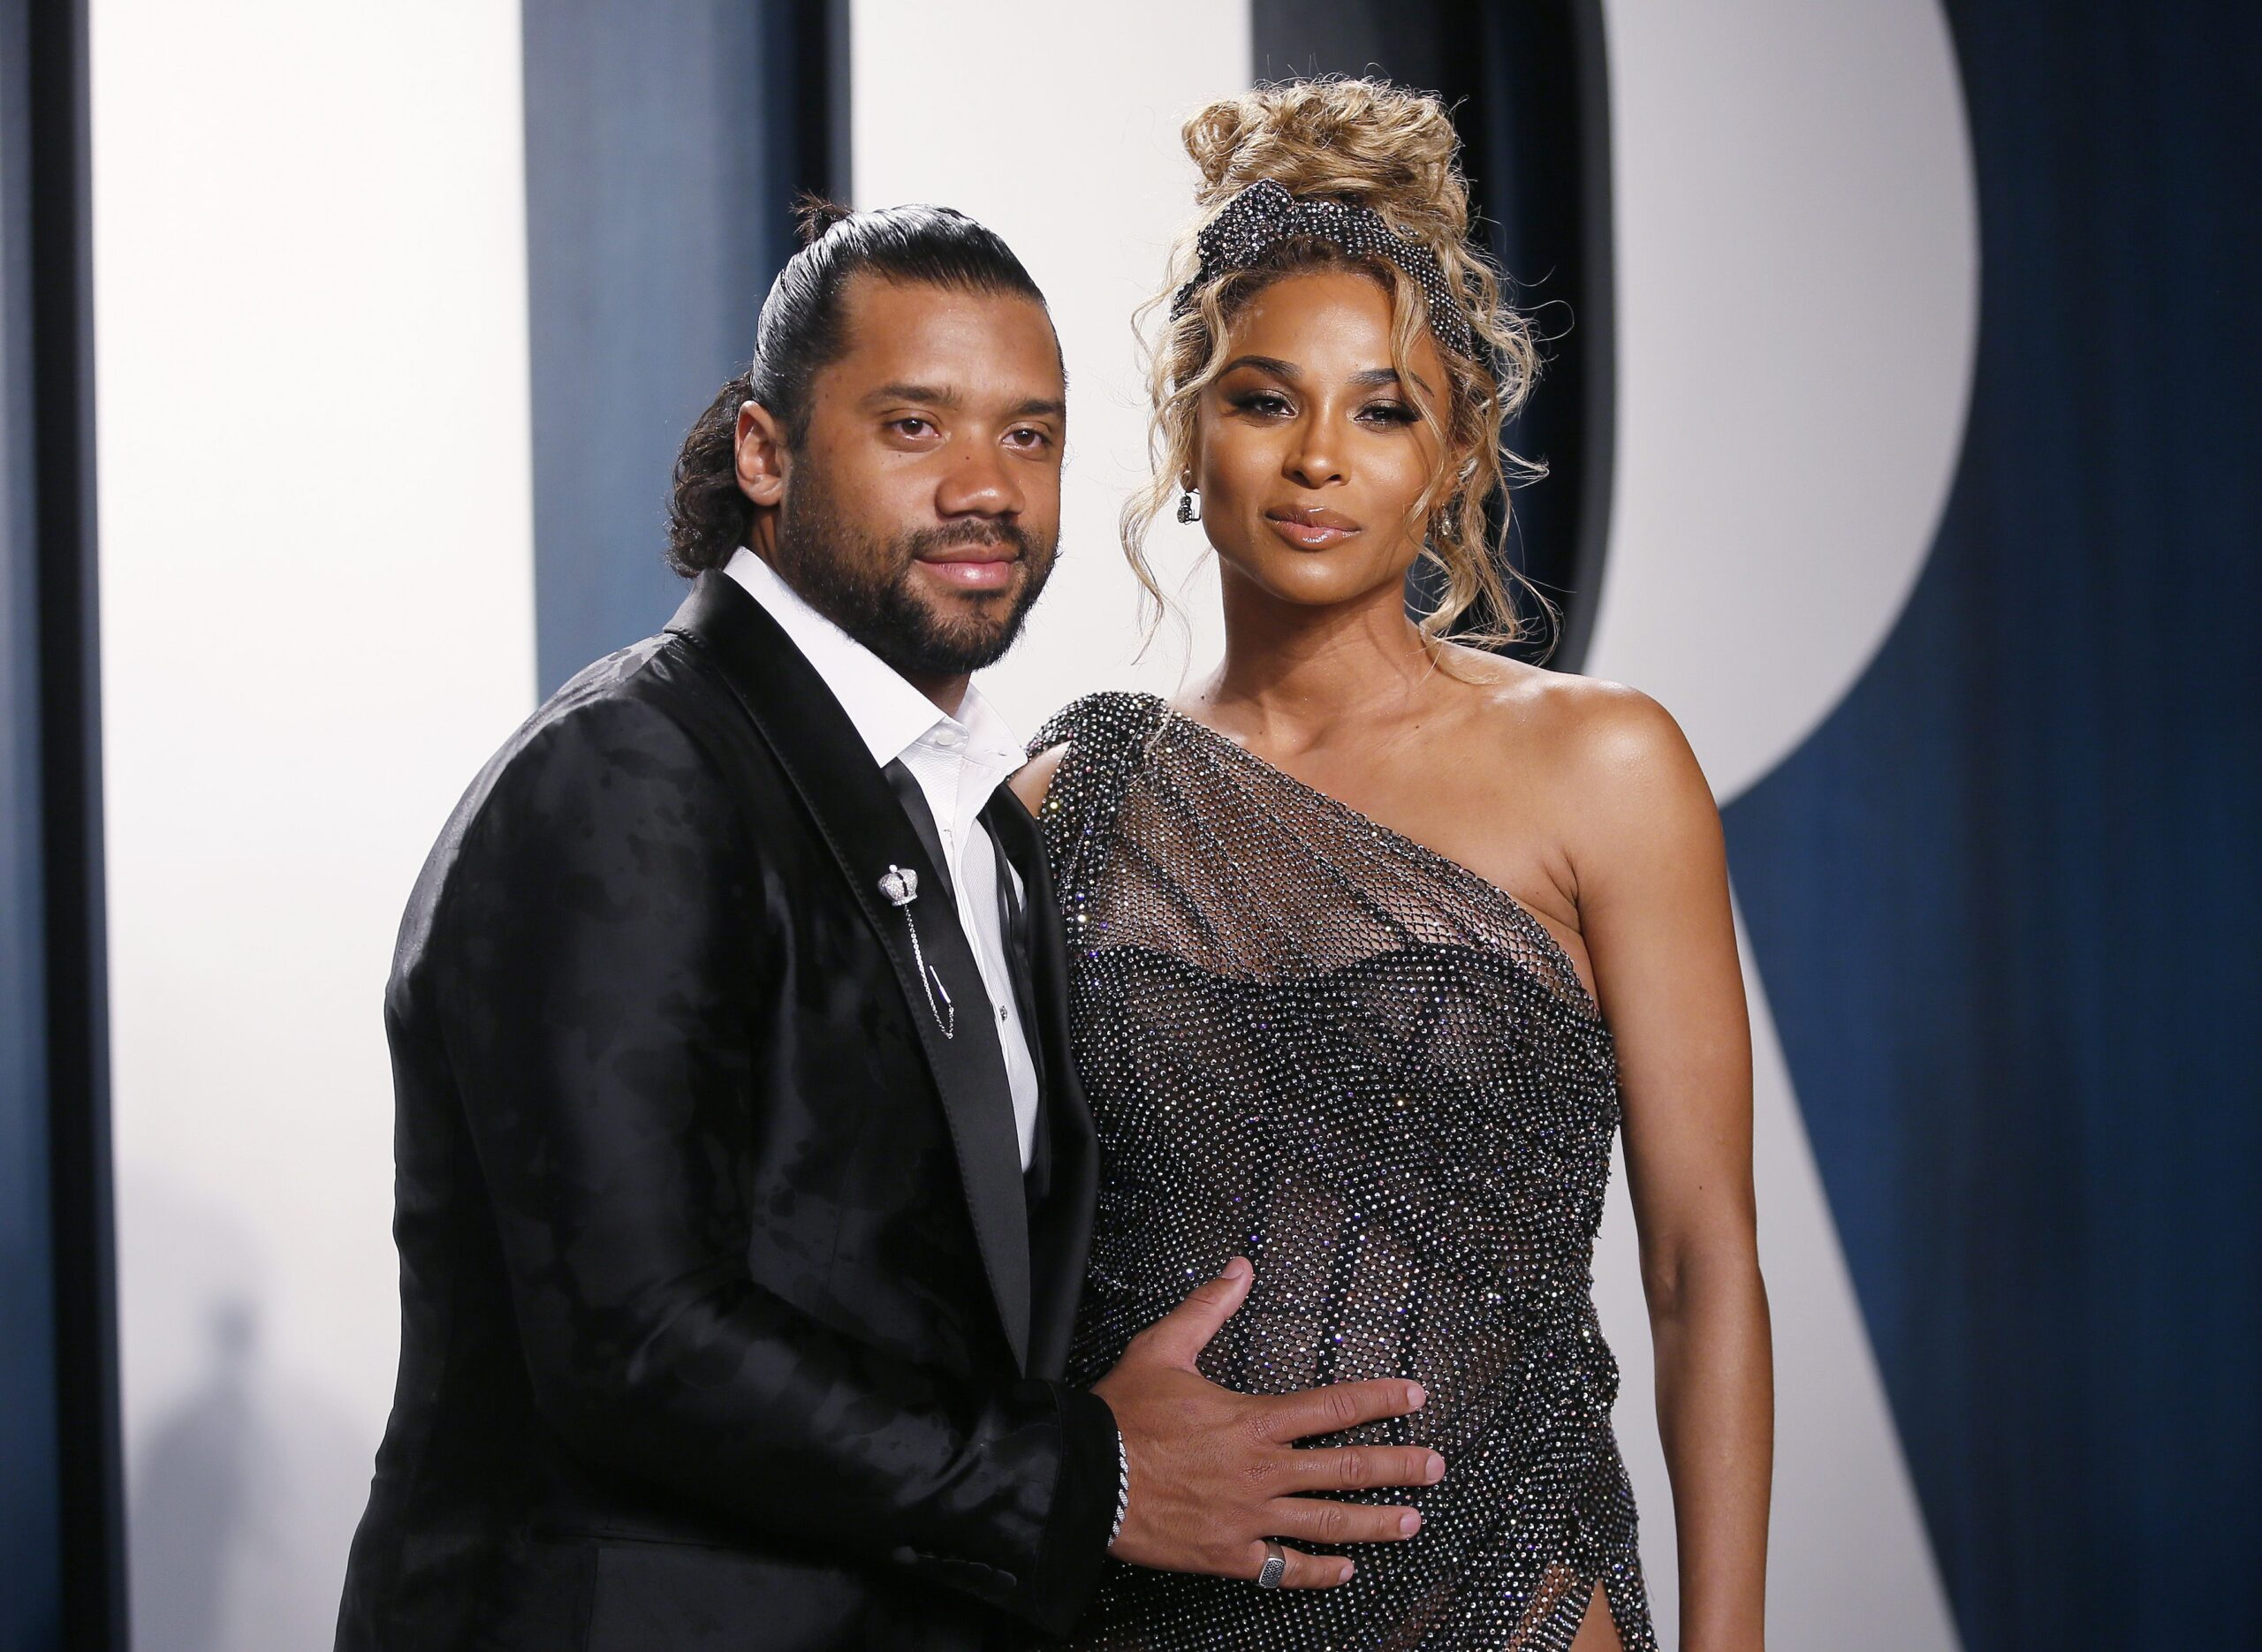 Ciara and Other Celebrity Births During COVID